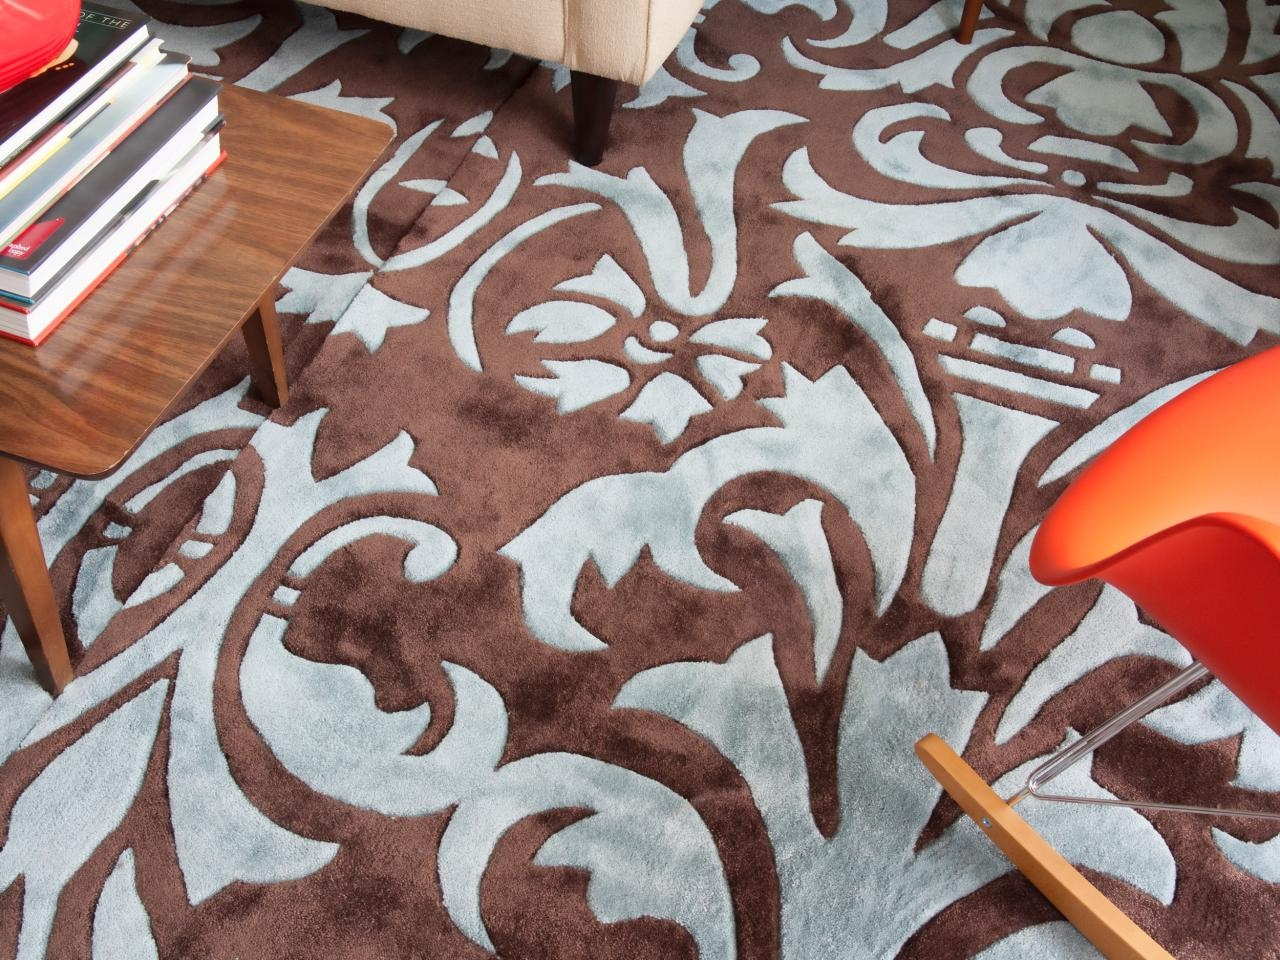 How To Make One Large Custom Area Rug From Several Small Ones Hgtv Throughout Custom Rugs (View 6 of 15)